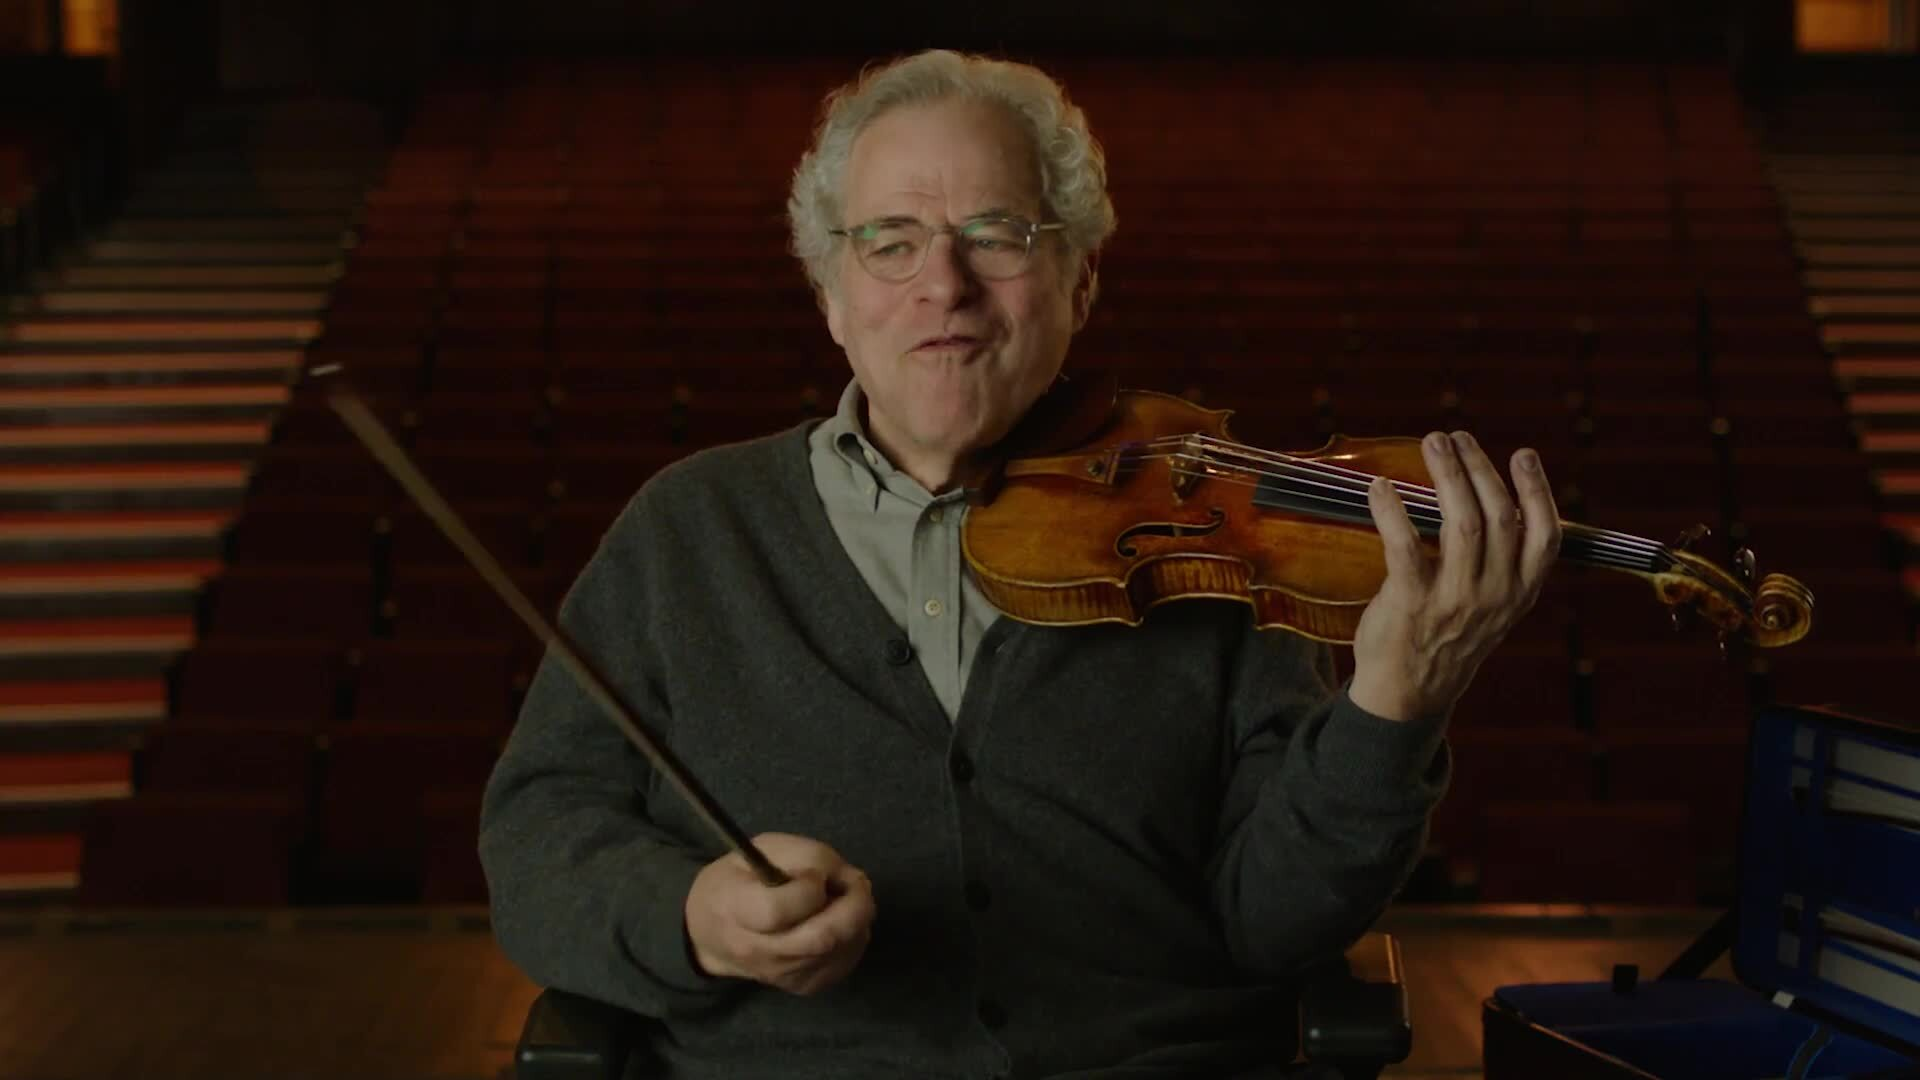 Violin Tips: How to Become a Better Violinist With Itzhak